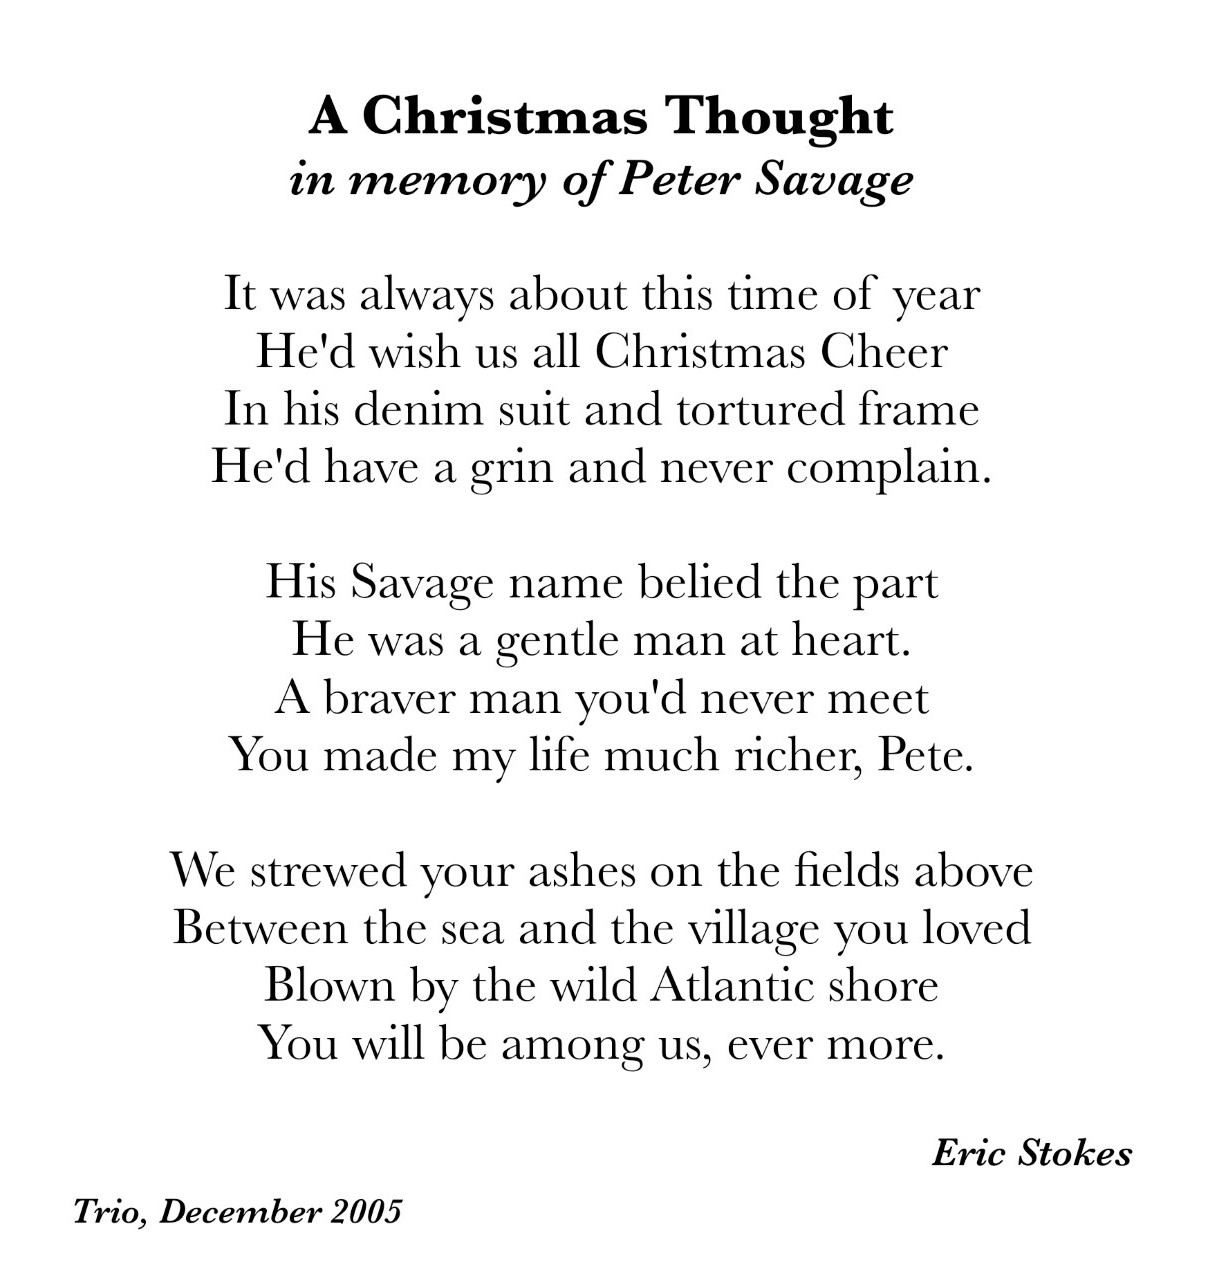 A Christmas Thought